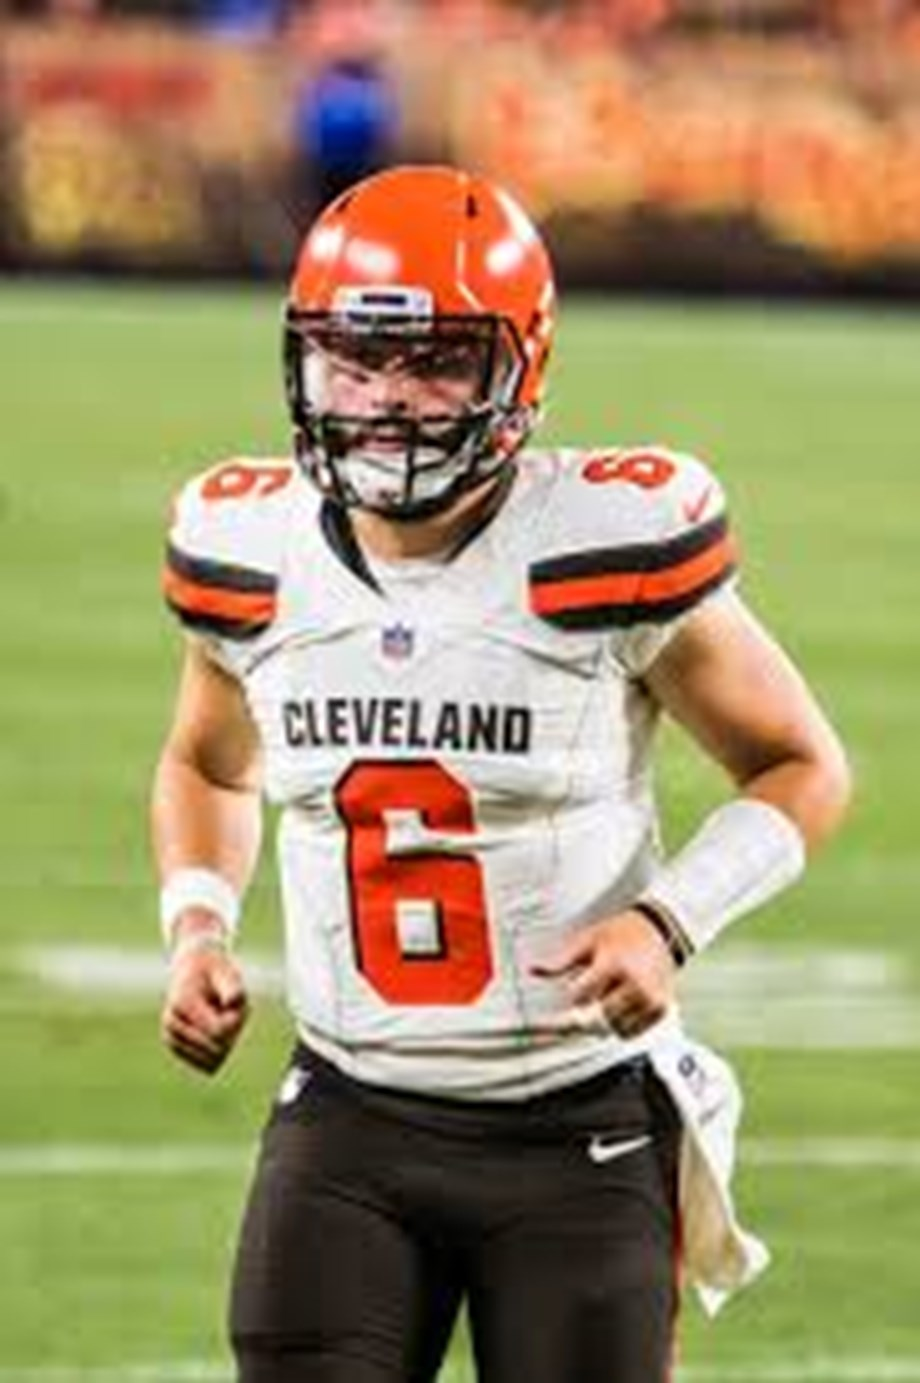 Mayfield, Browns survive Bills after late FG miss